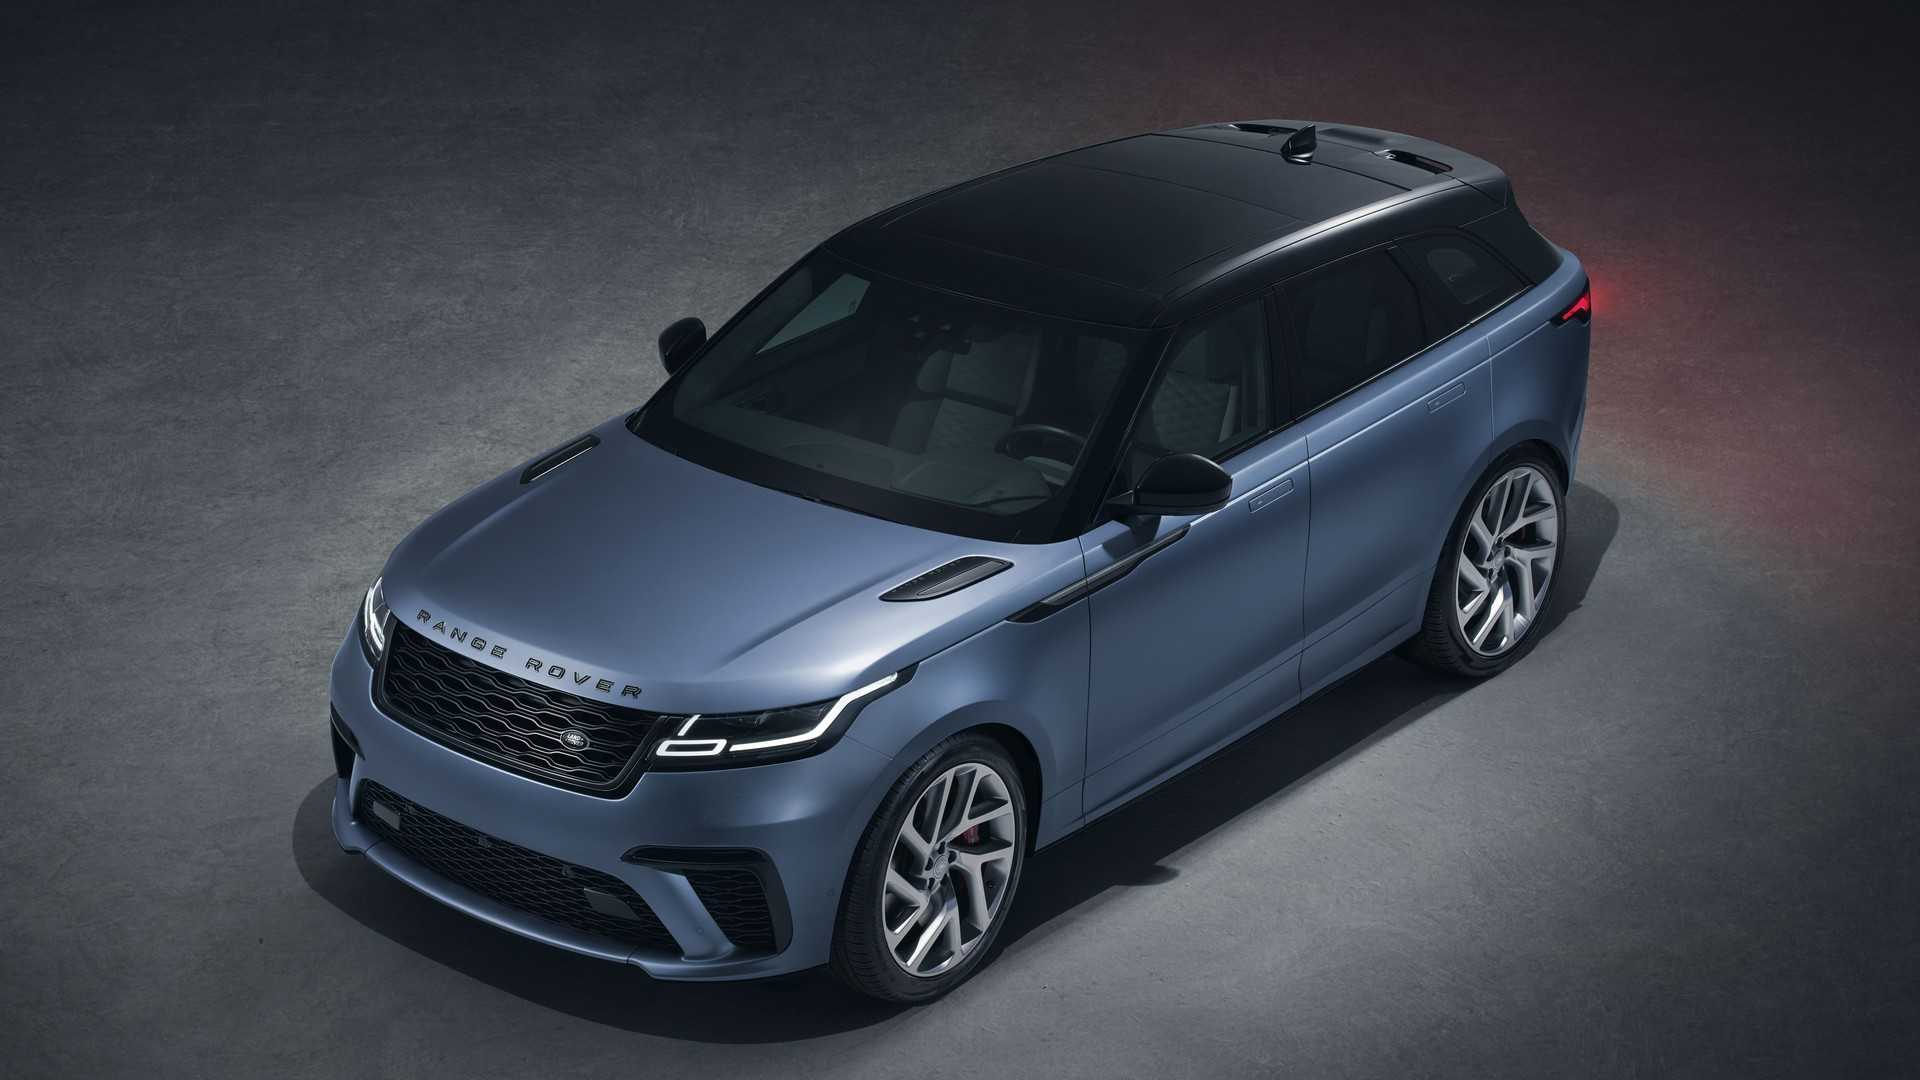 2019 Range Rover Velar SVR: News, Specs, Price >> Range Rover Velar Svautobiography Dynamic Edition Revealed